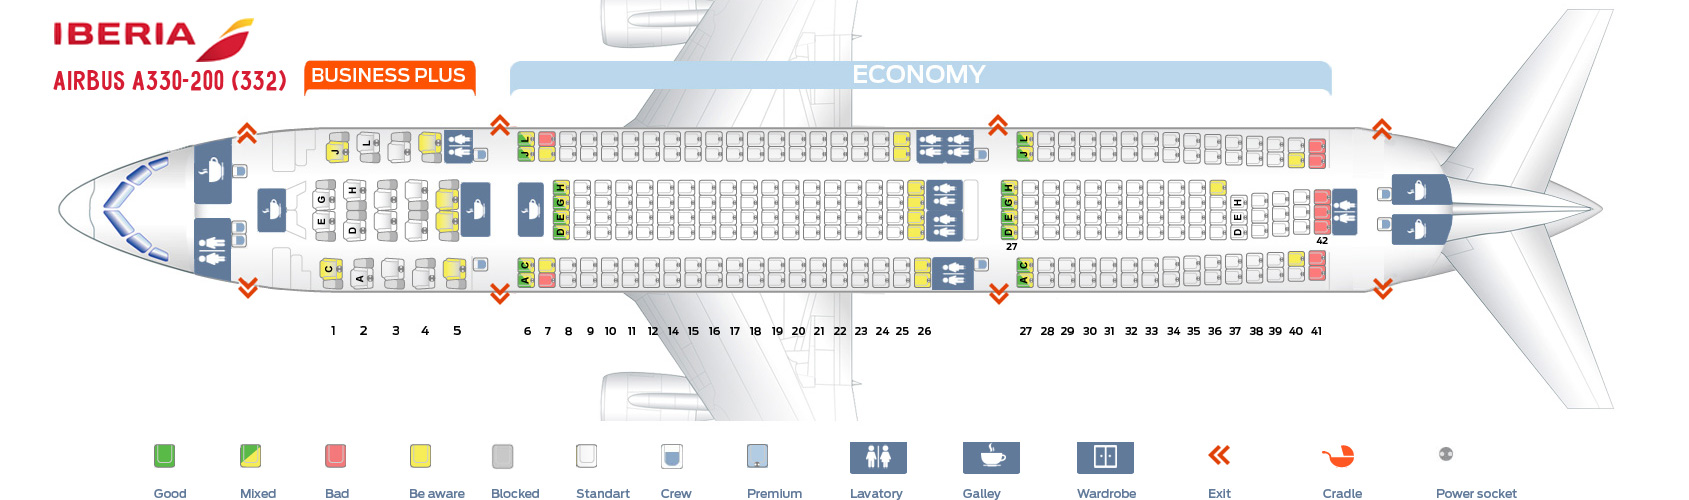 Seat Map And Seating Chart Airbus A330 200 Iberia